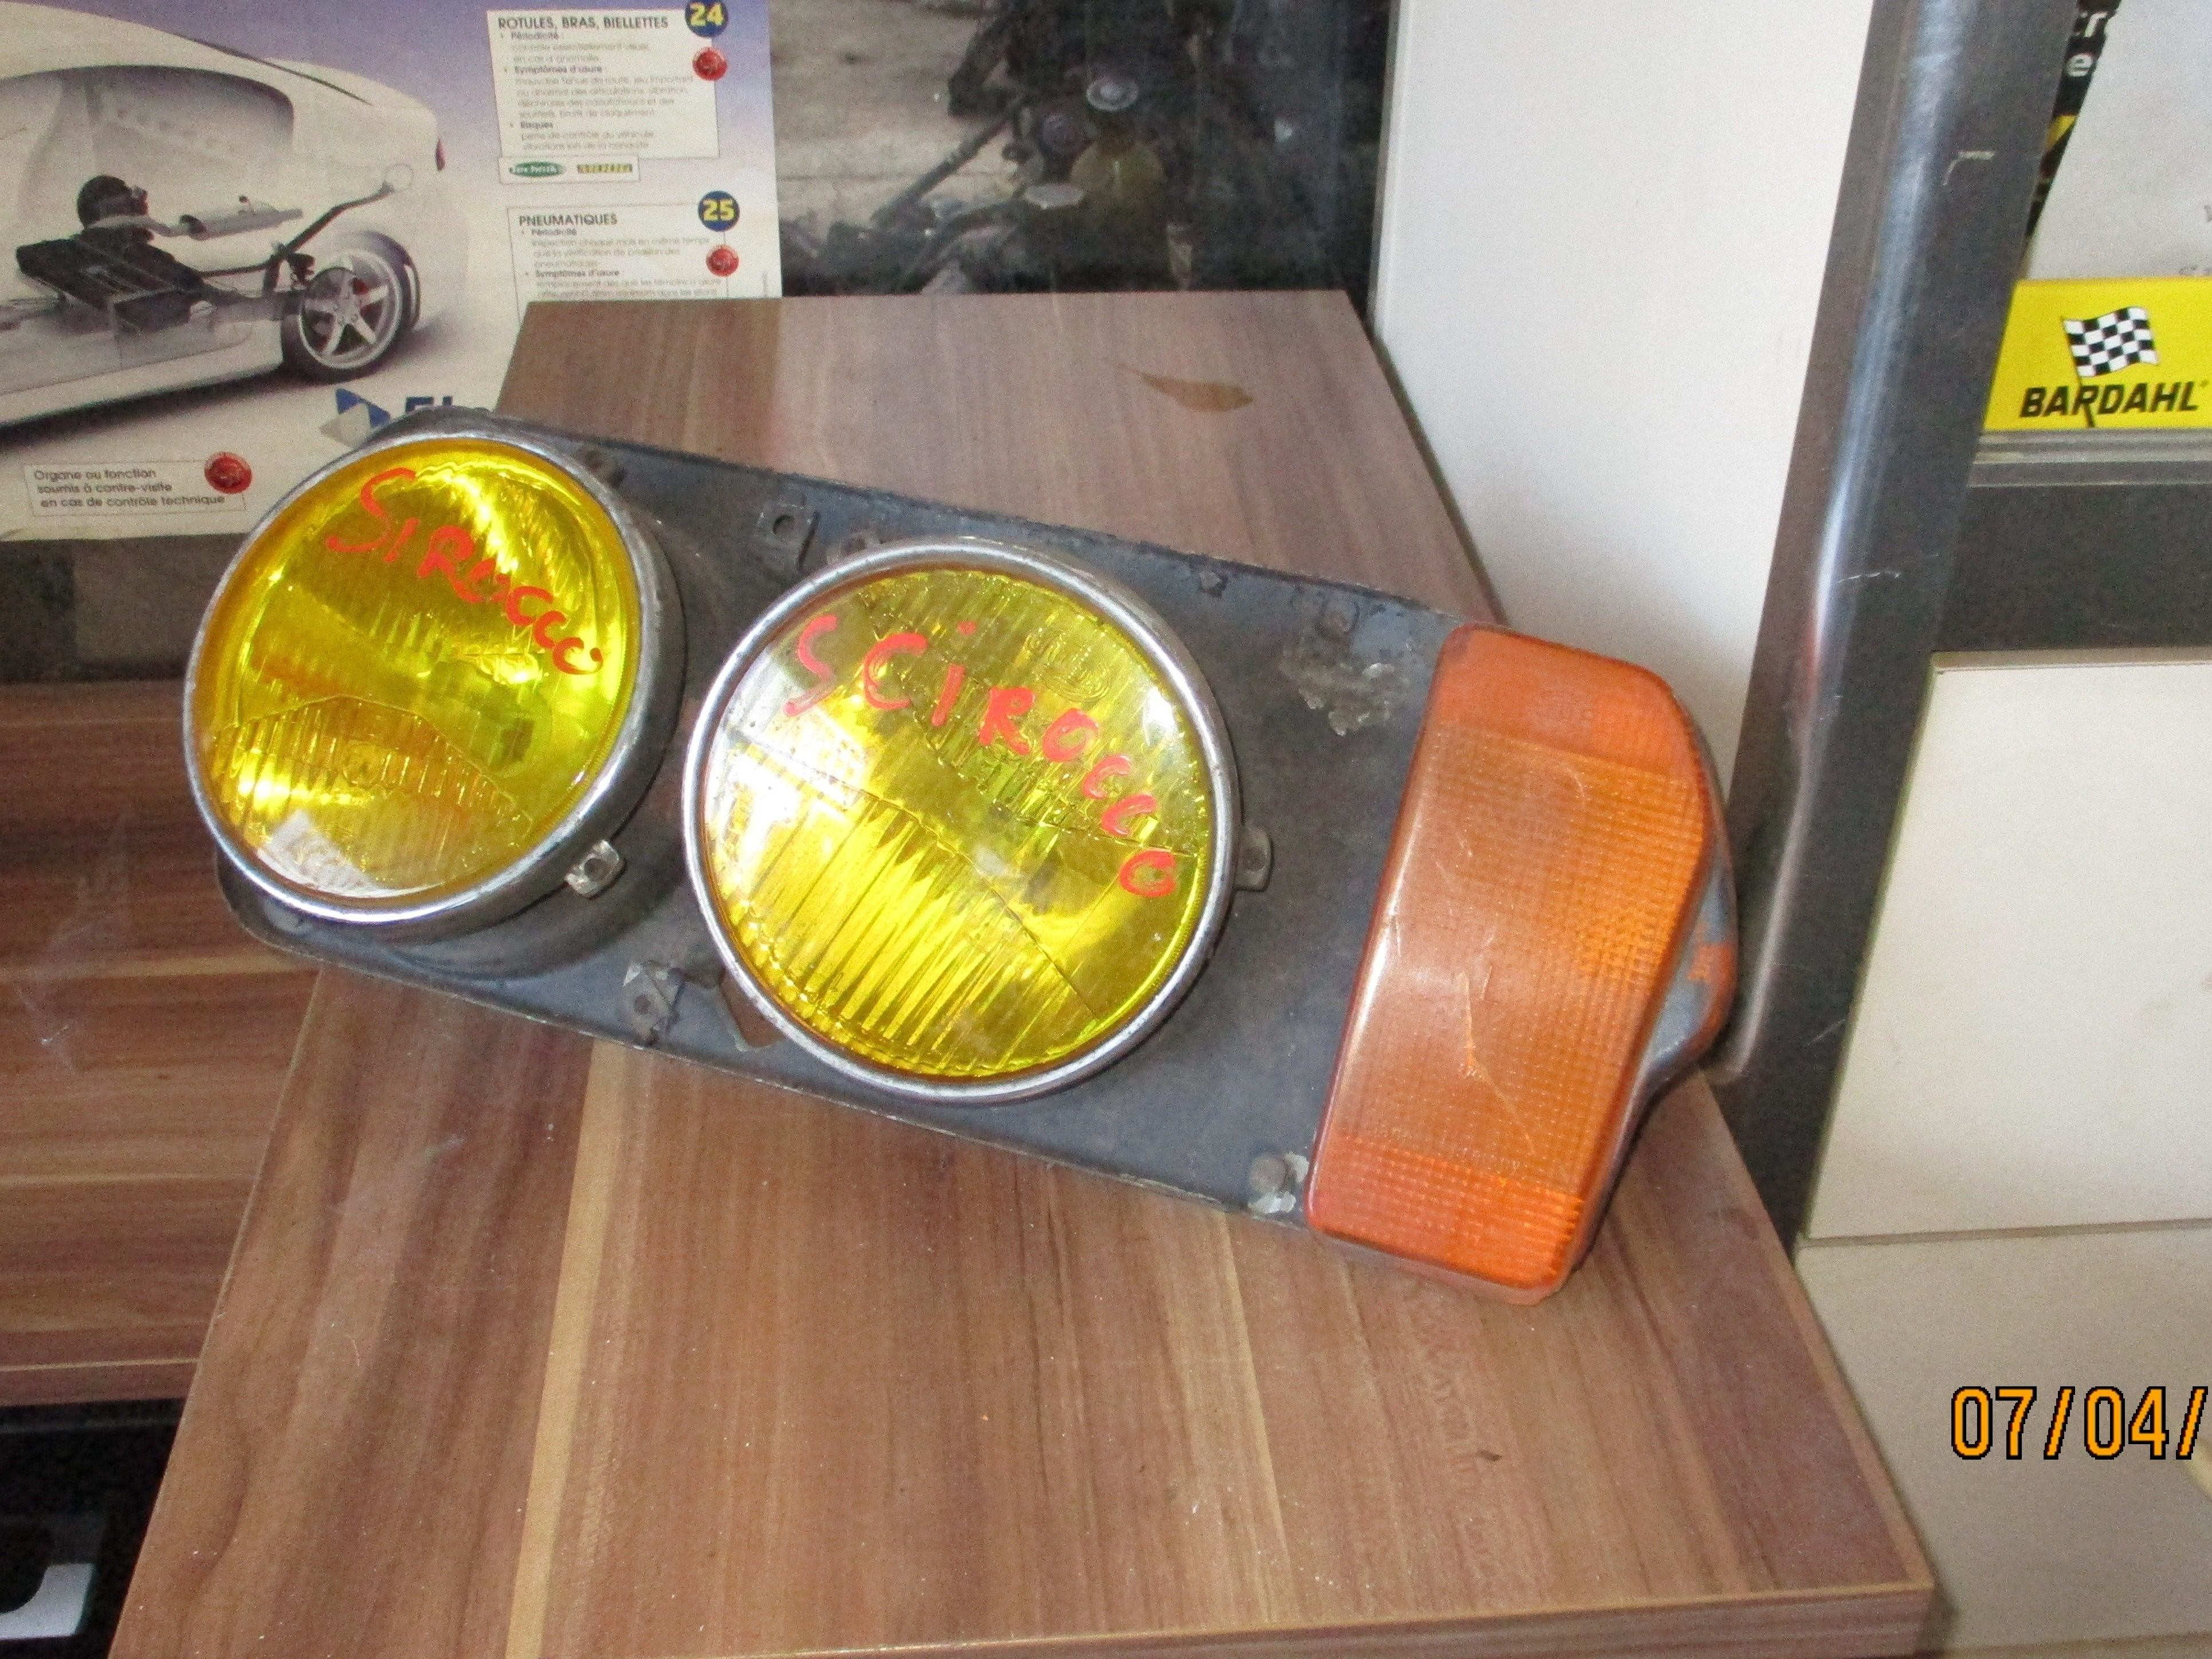 VW SIROCCO ELEMENT DOUBLE PHARE + CLIGNOTANT COTE GAUCHE